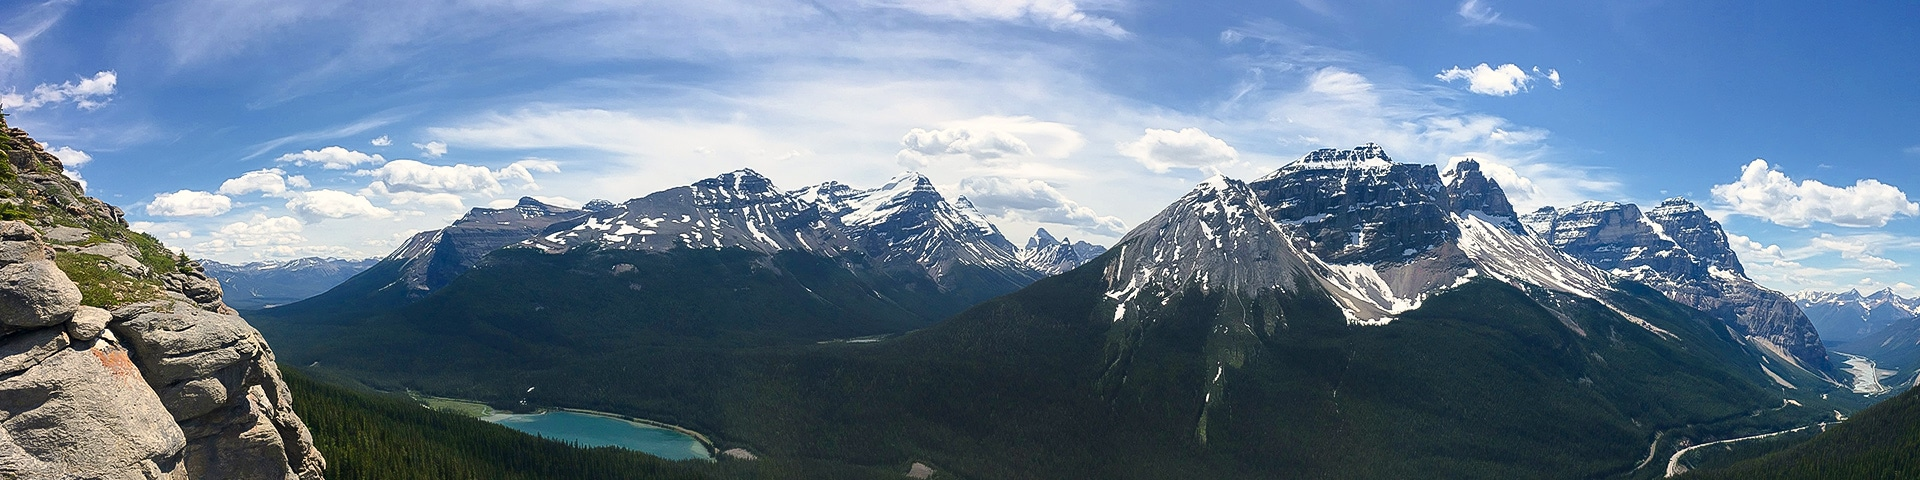 Panorama of the Paget Lookout hike in Yoho National Park